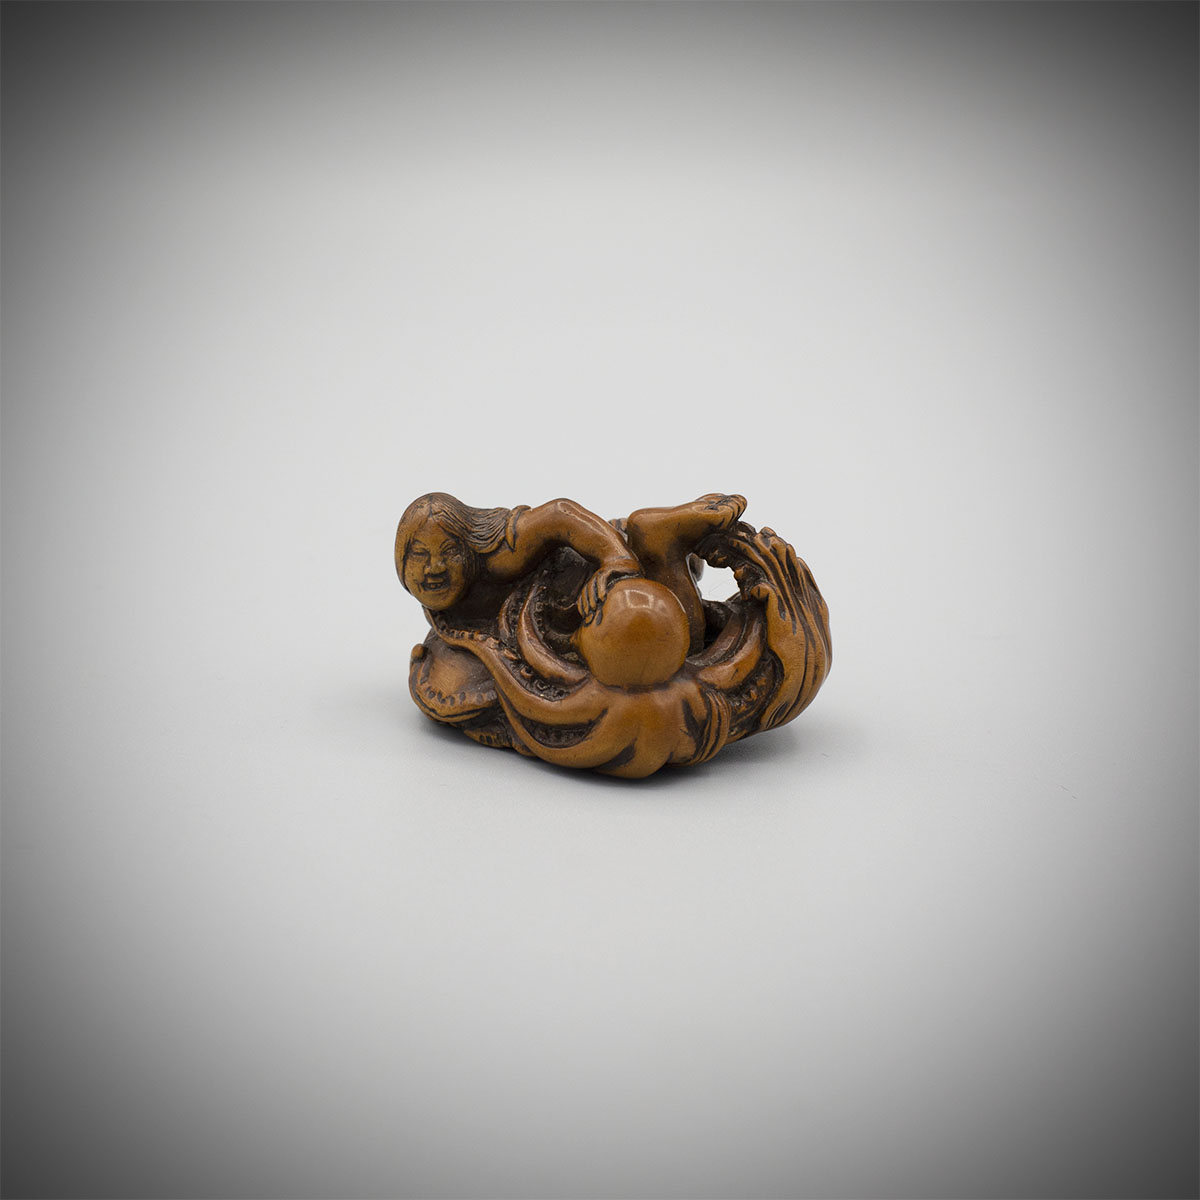 Boxwood netsuke of an ama and octopus by Kokei, MR3233_v1